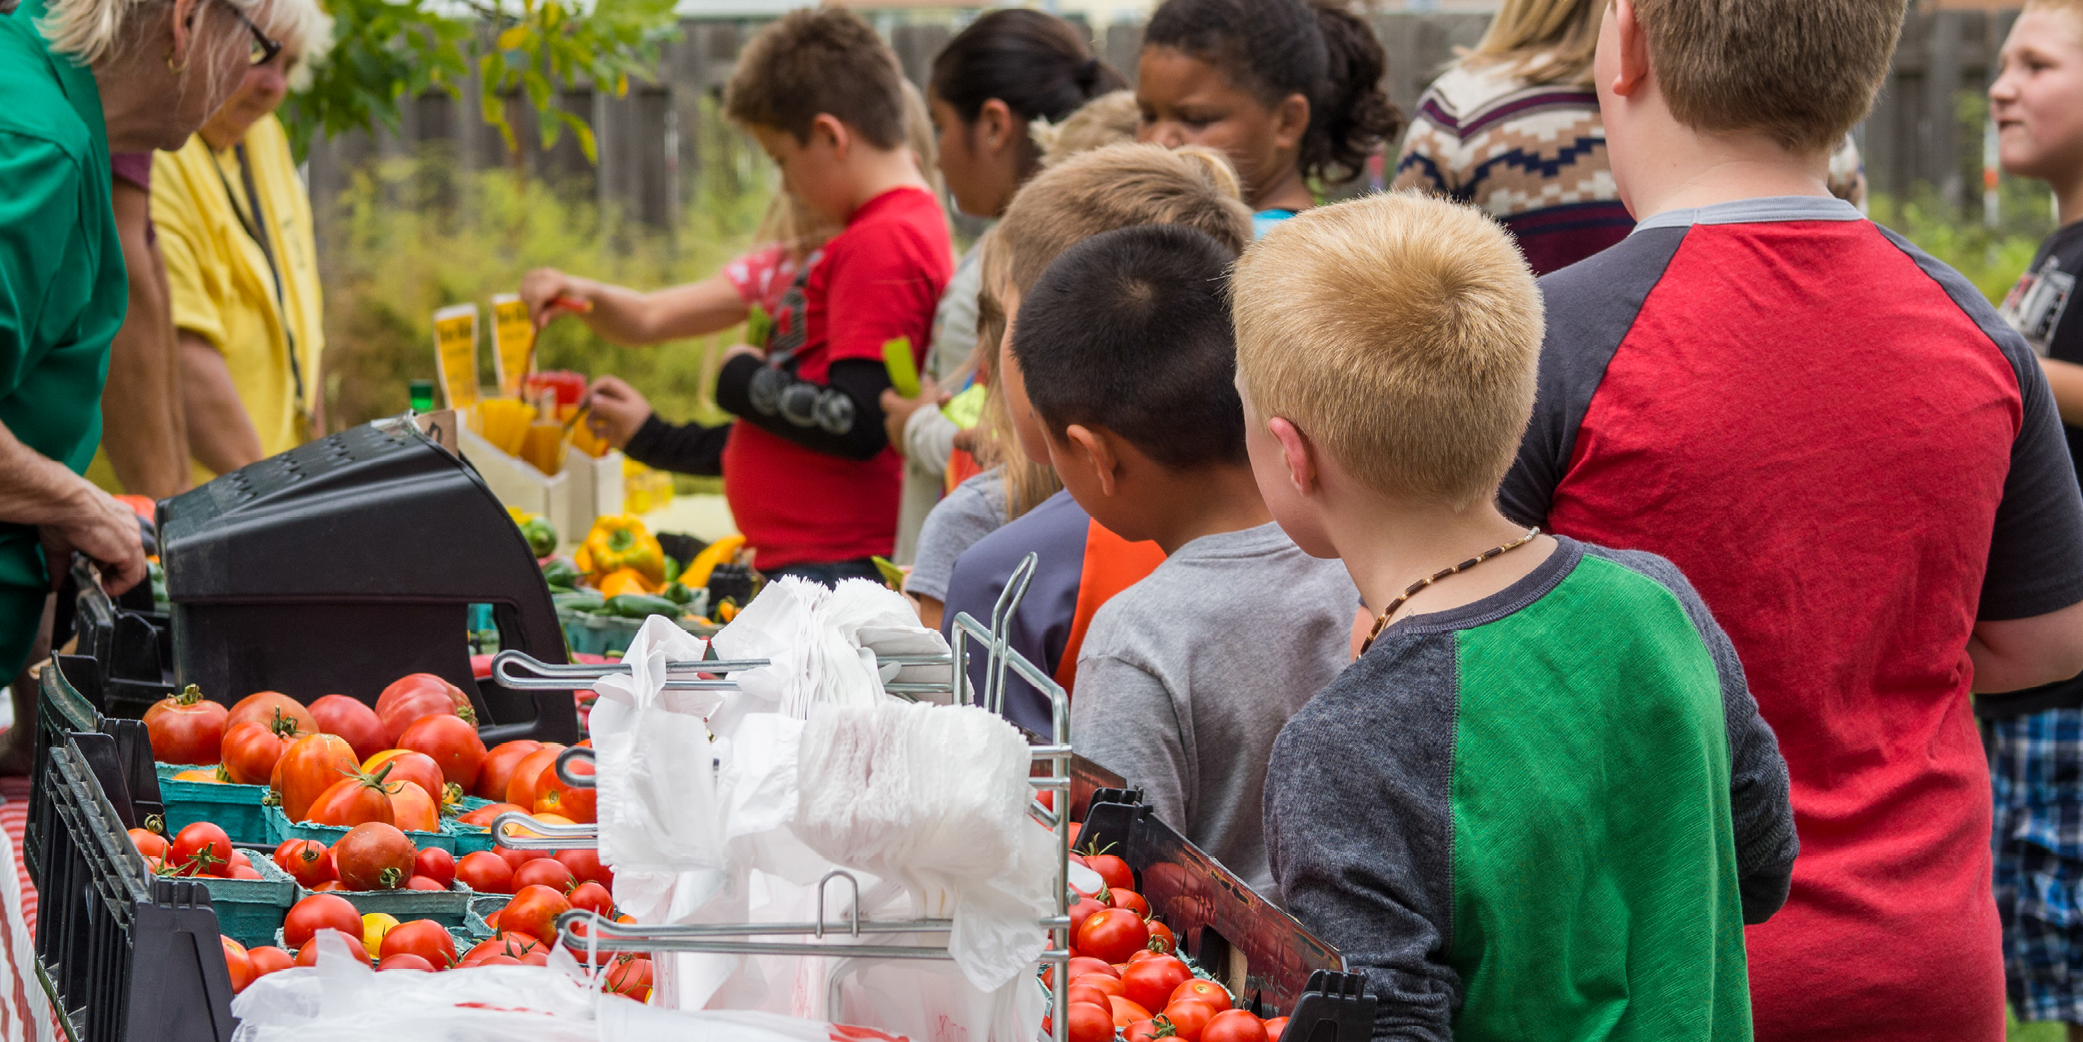 Children standing in line in front of tomatoes